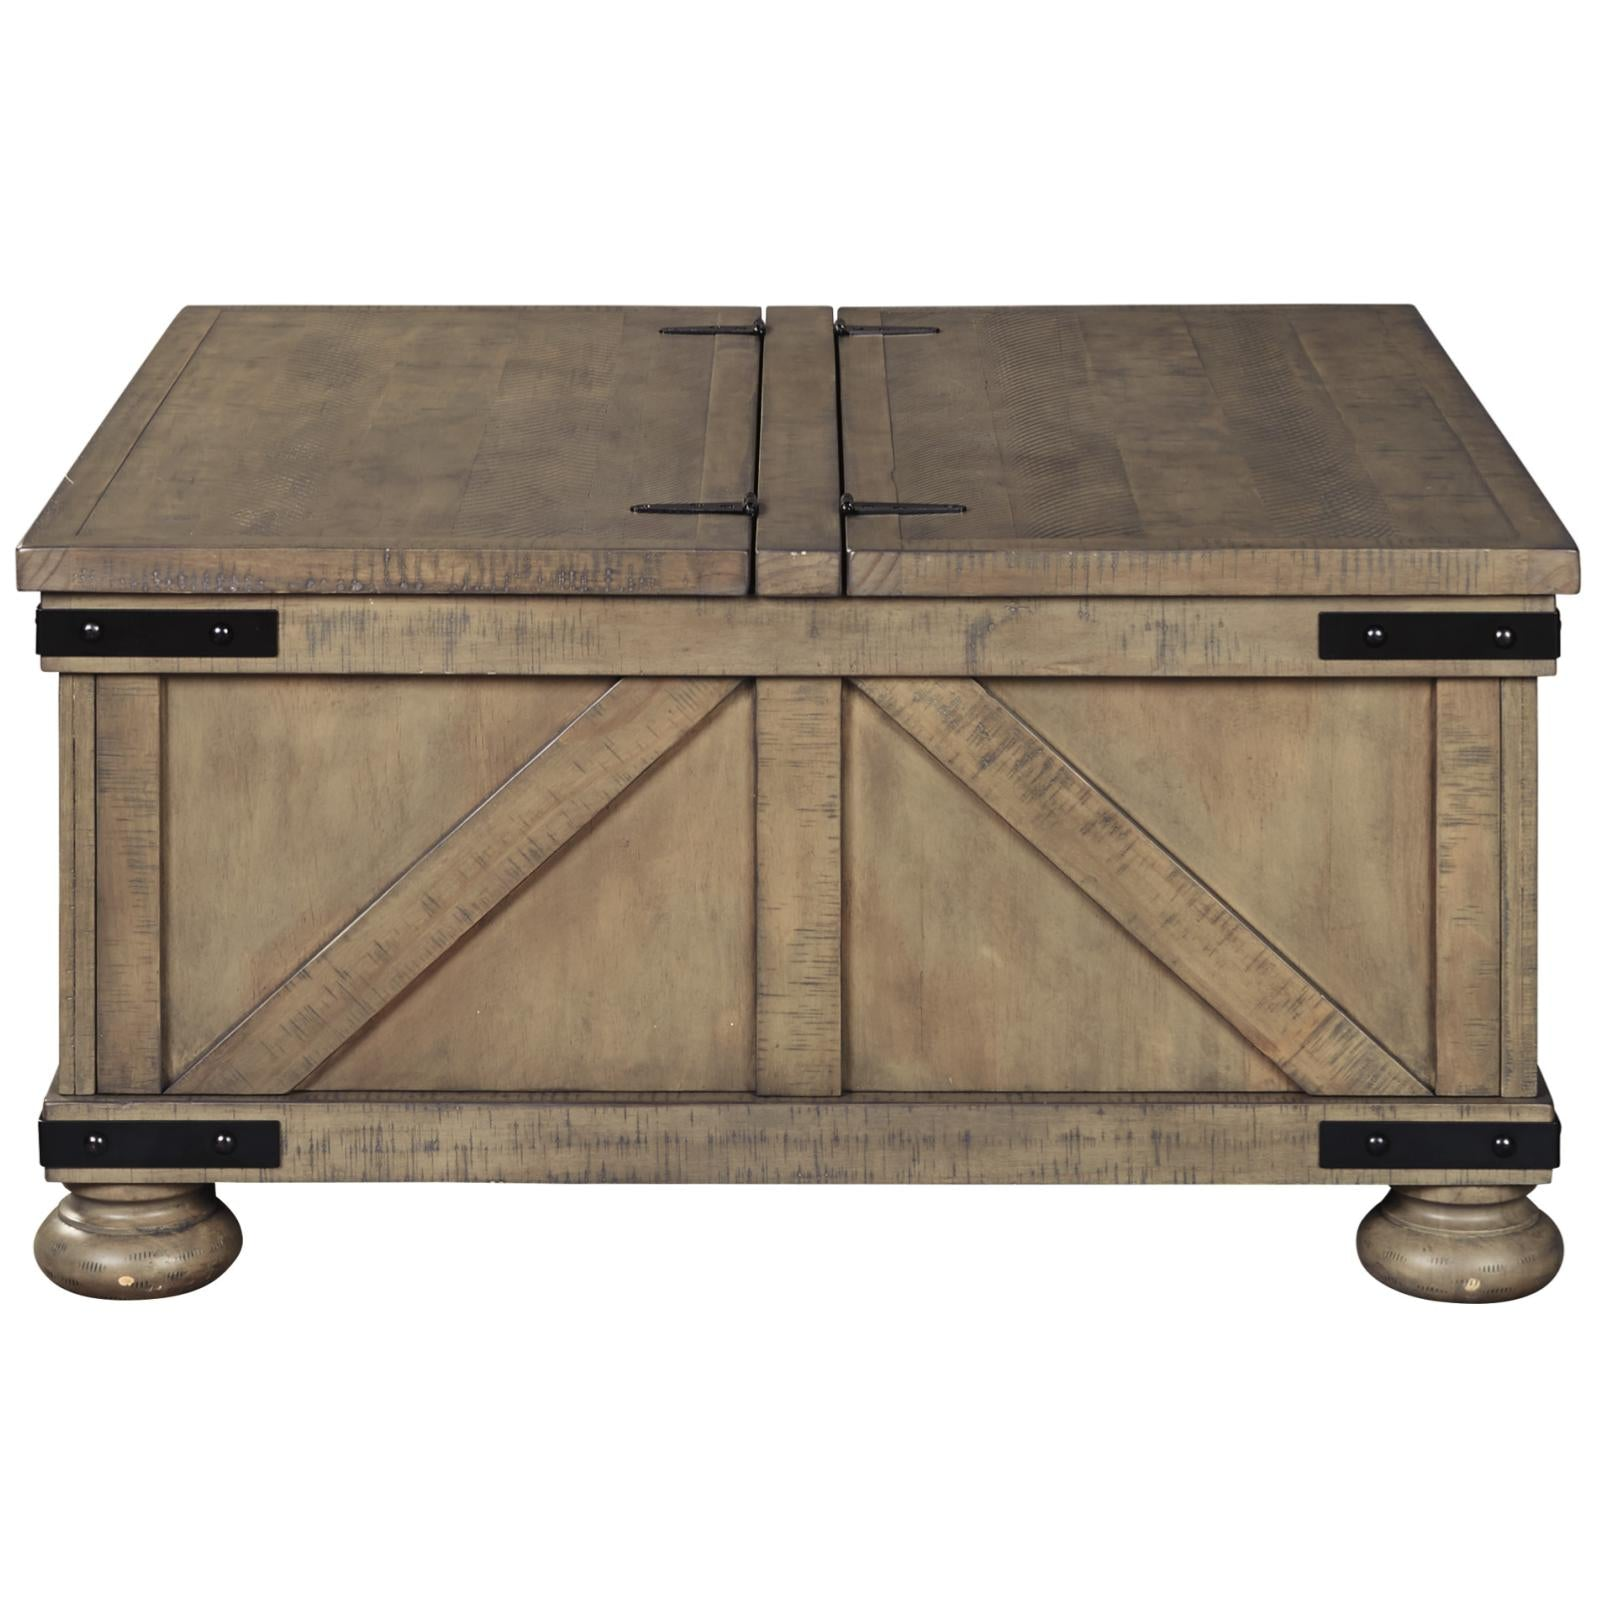 Aldwin Storage Coffee Table Adams Furniture